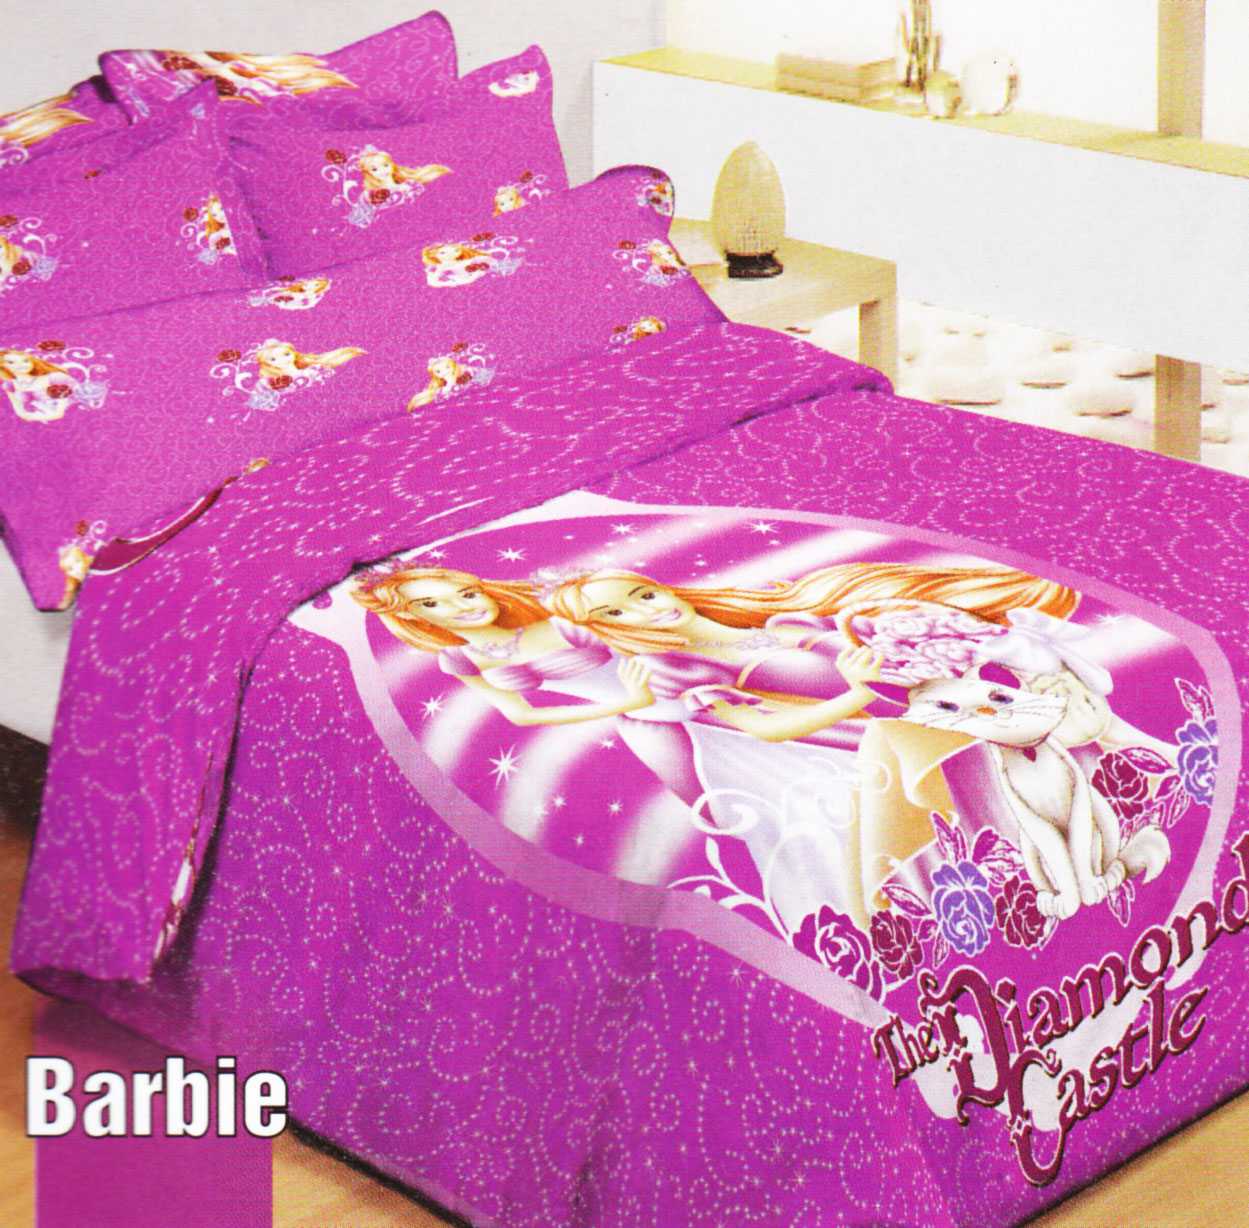 Bed cover my love anak - Katalog Shyra Motif Anak Label Bedcover